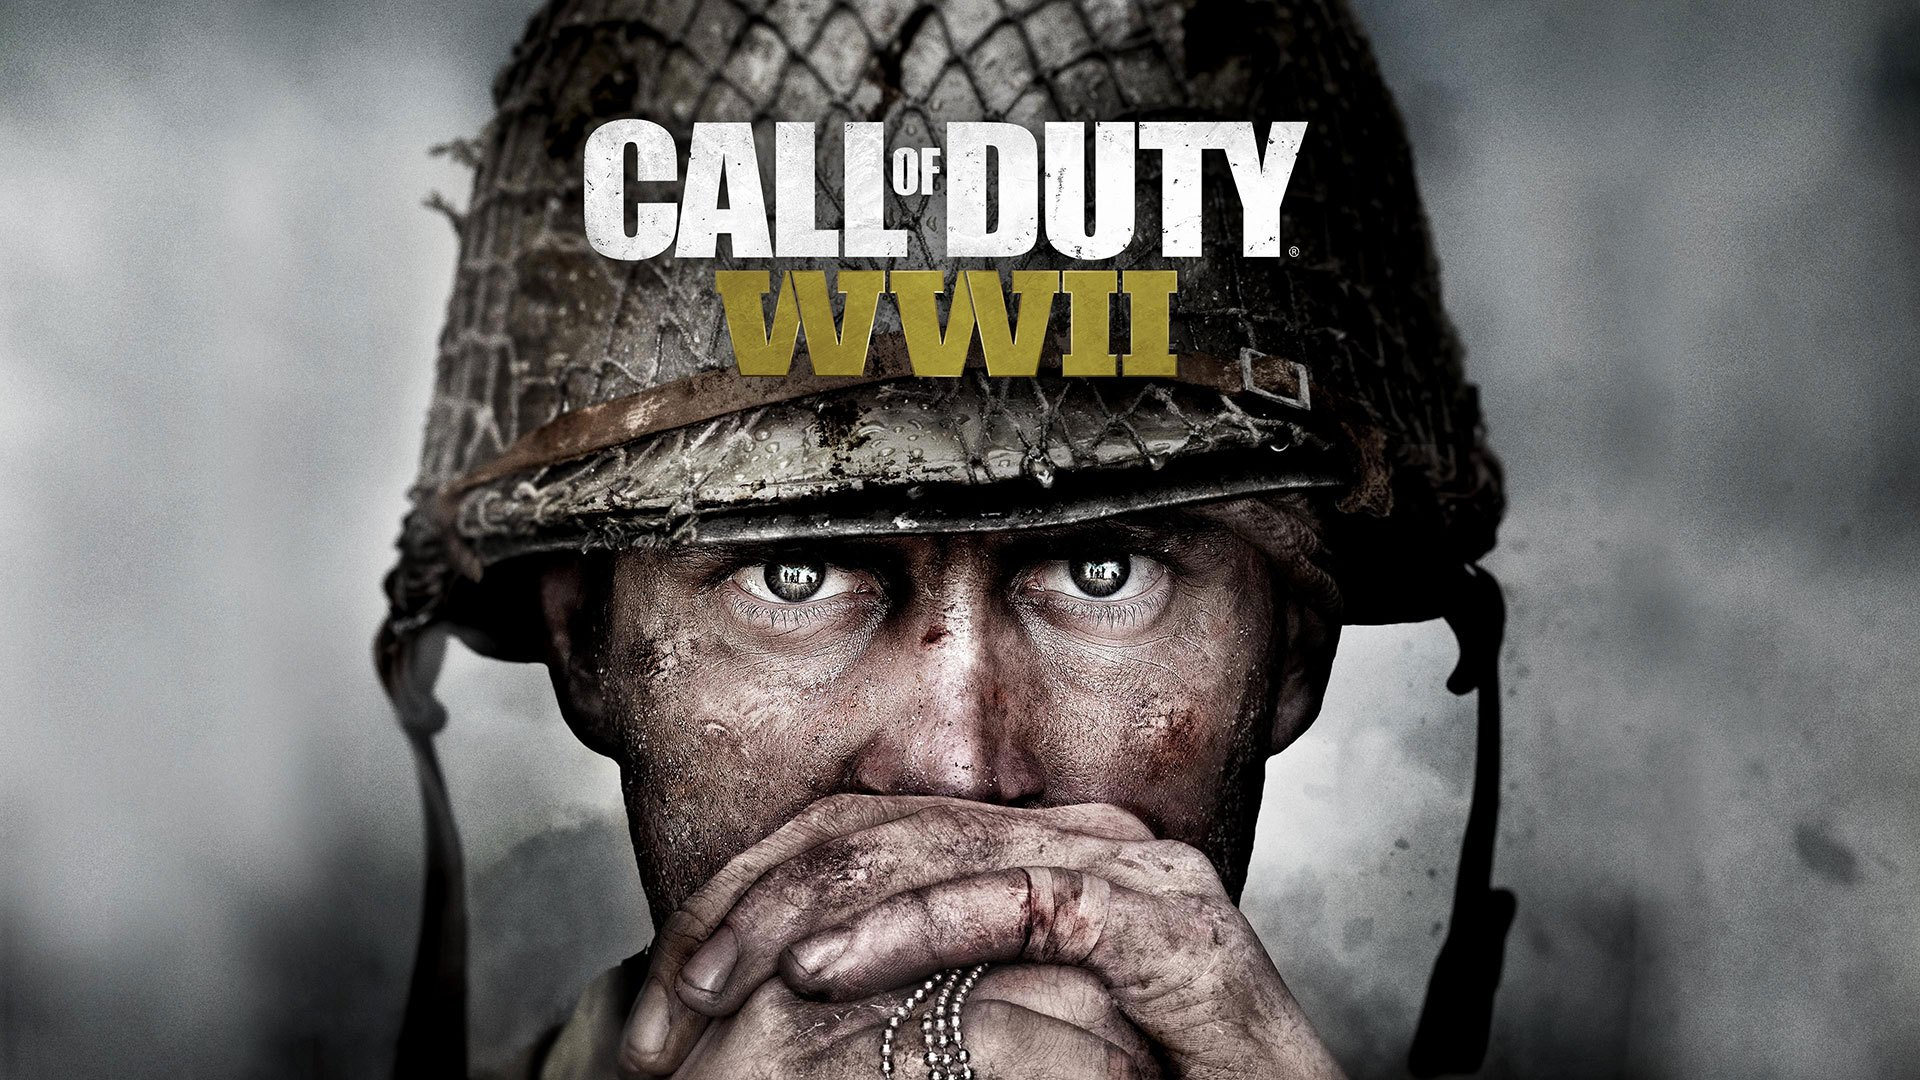 Call of Duty WWII Free Download - CroHasIt - Download PC ...